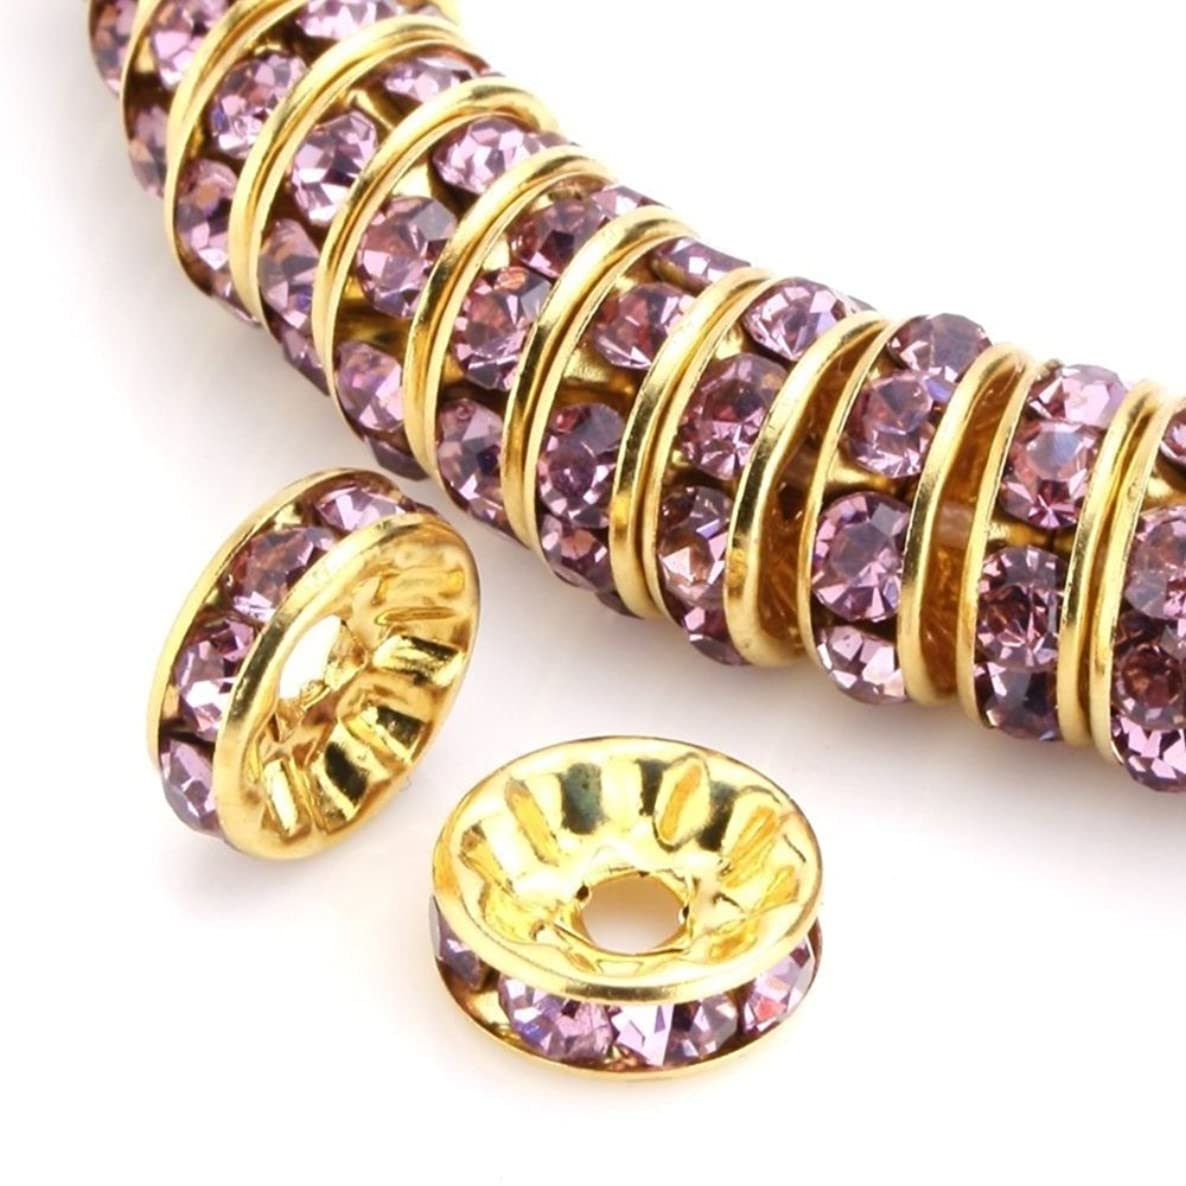 100pcs Best Quality Rondelle Spacer Beads 8mm Amethyst Top Quality Austrian Crystal Rhinestone 14k Gold Plated Copper Brass CF4-811